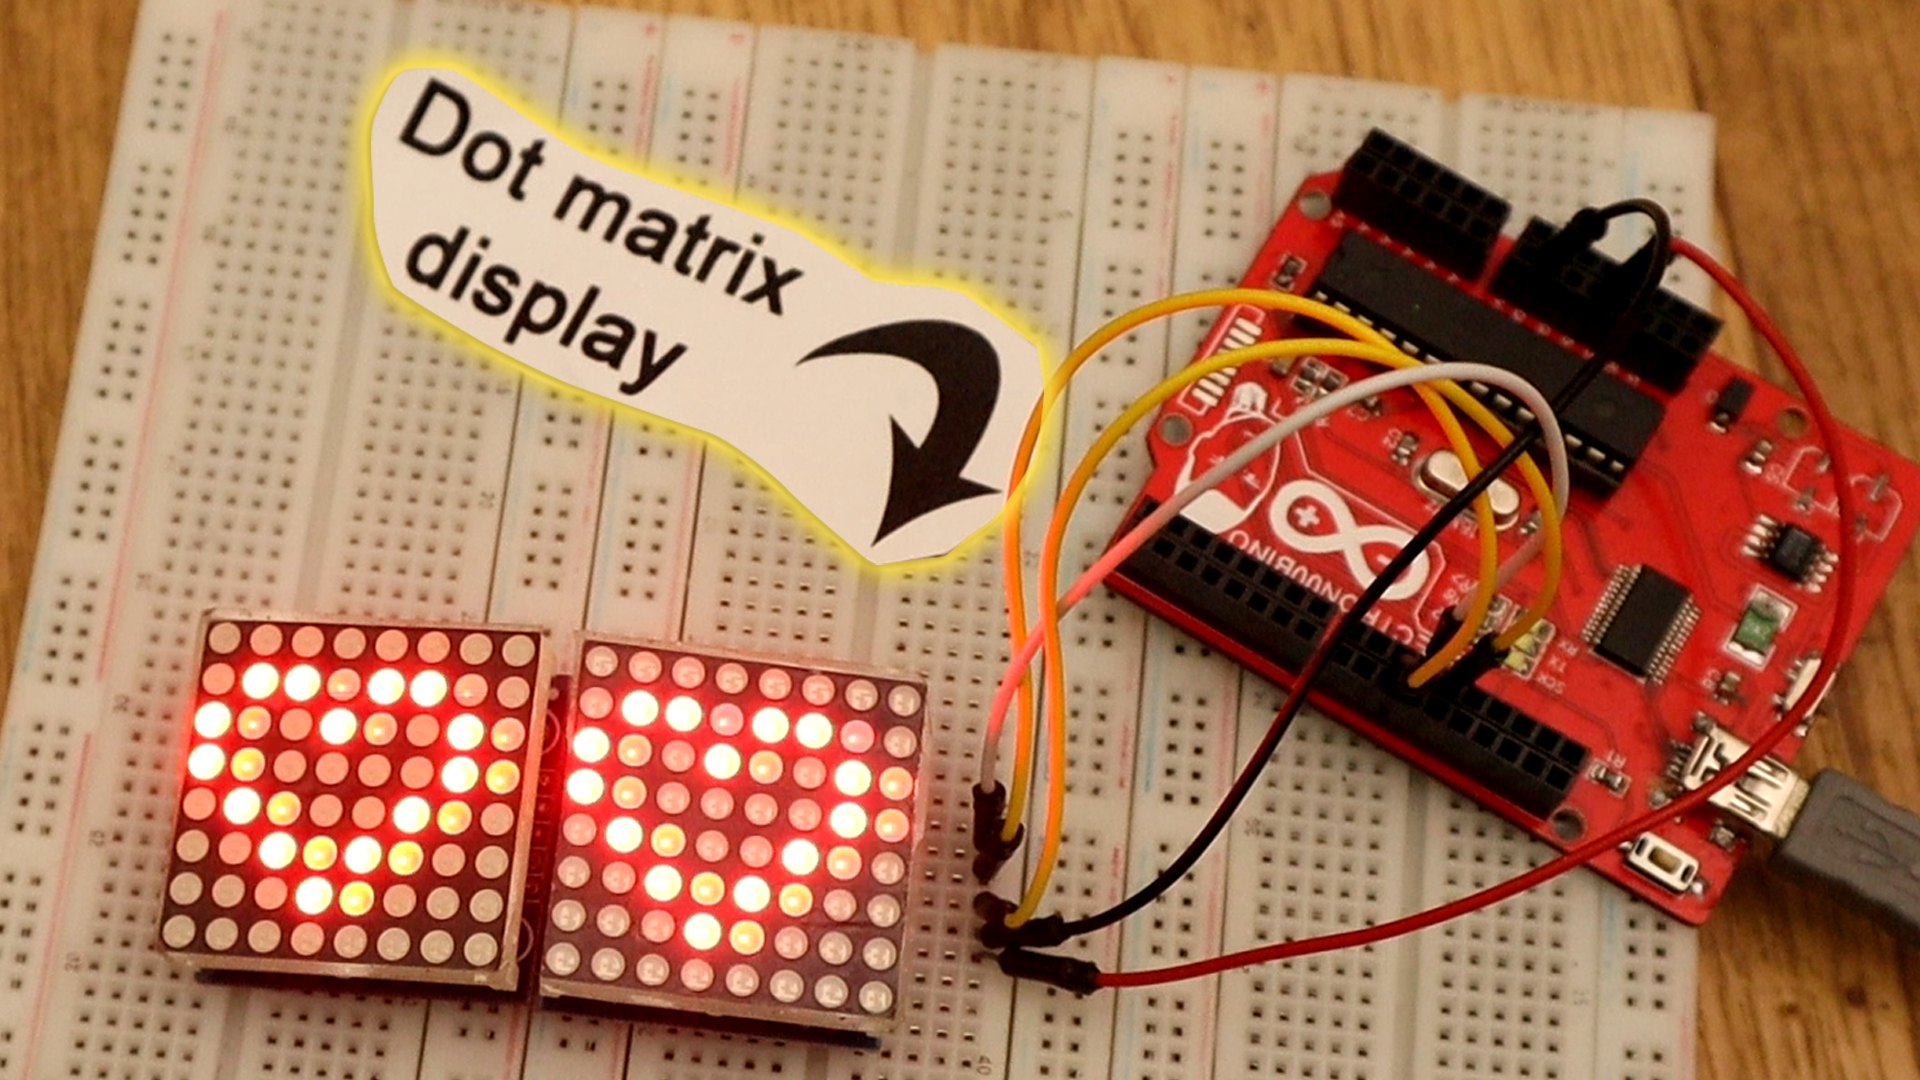 Arduino Tutorials Begginers Advanced Easy Basic Arduino7segmentleddisplaycircuitpng Using The Max7219 Driver We Could Control A Dot Matrix Display Or 8 Segments Displays In This Case Show Text Any Other Figure On An 8x8 Led